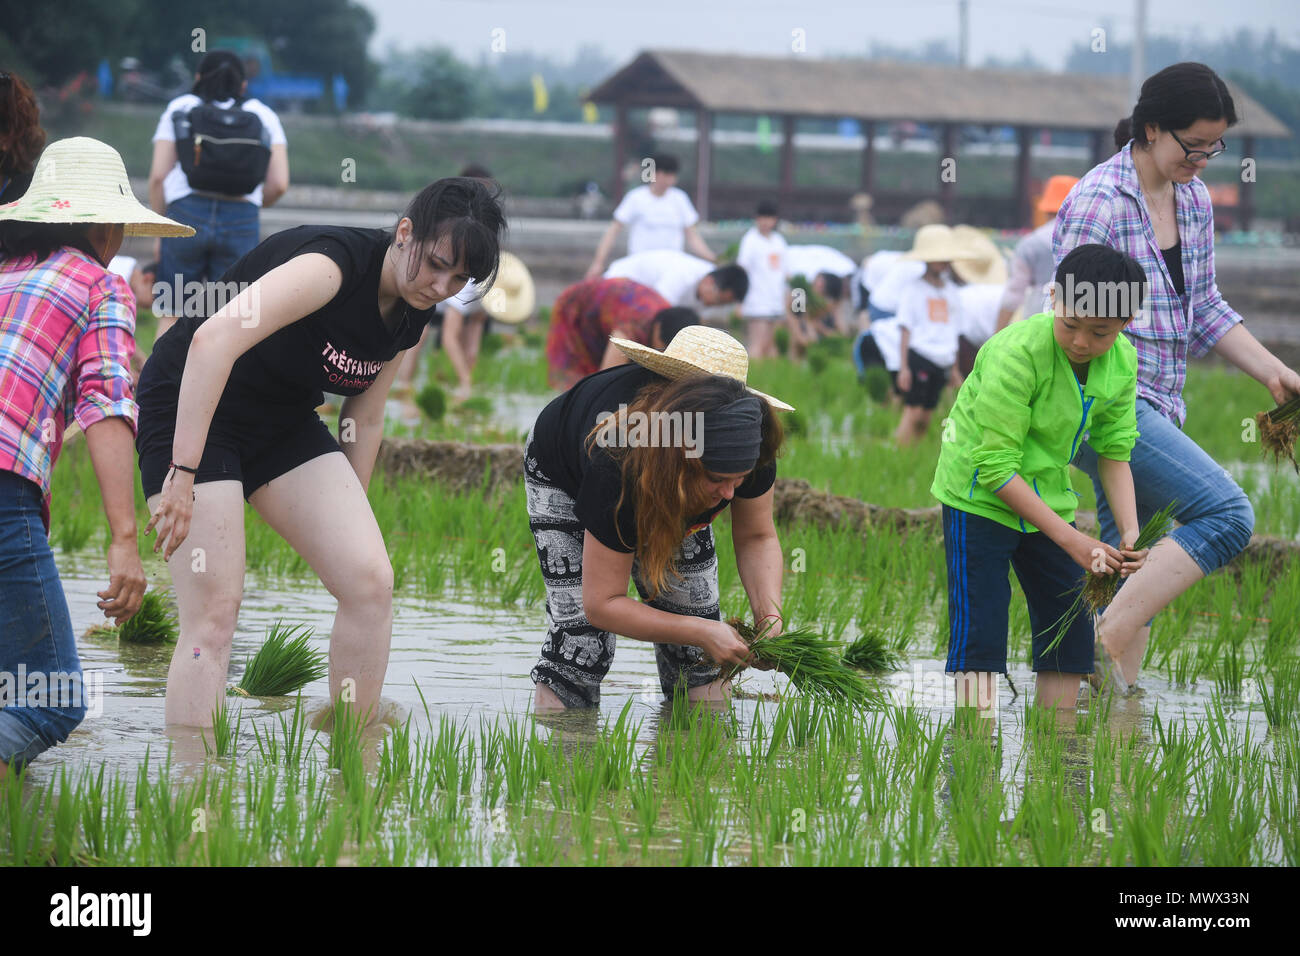 Hangzhou, China's Zhejiang Province. 2nd June, 2018. People participate in a rice transplanting game in Hongqi Village of Hangzhou, east China's Zhejiang Province, June 2, 2018. The game was organized to evoke people's memory of traditional farming customs and promote local tourism. Credit: Xu Yu/Xinhua/Alamy Live News - Stock Image